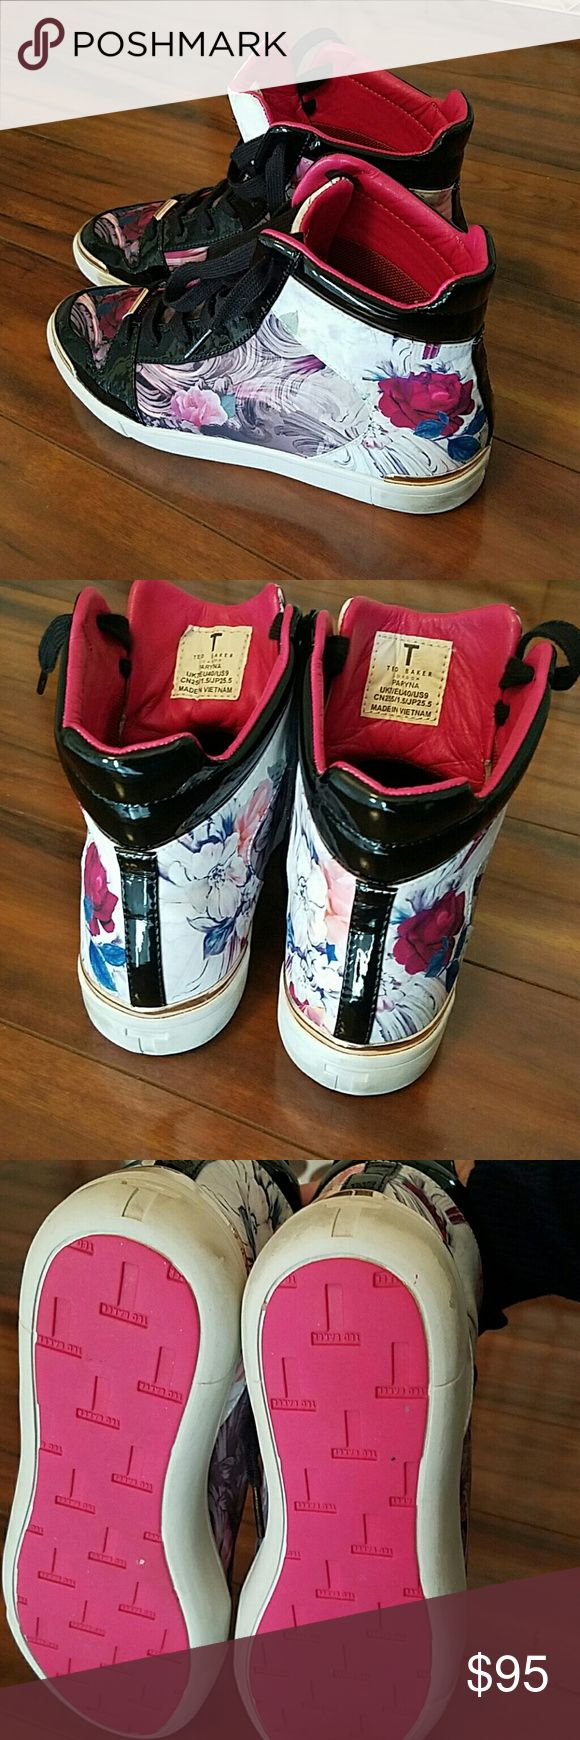 😍❤Ted Baker Stylish Tennis Shoes that  9 is true to it's size 8 in half will work also Ted Baker Shoes Sneakers